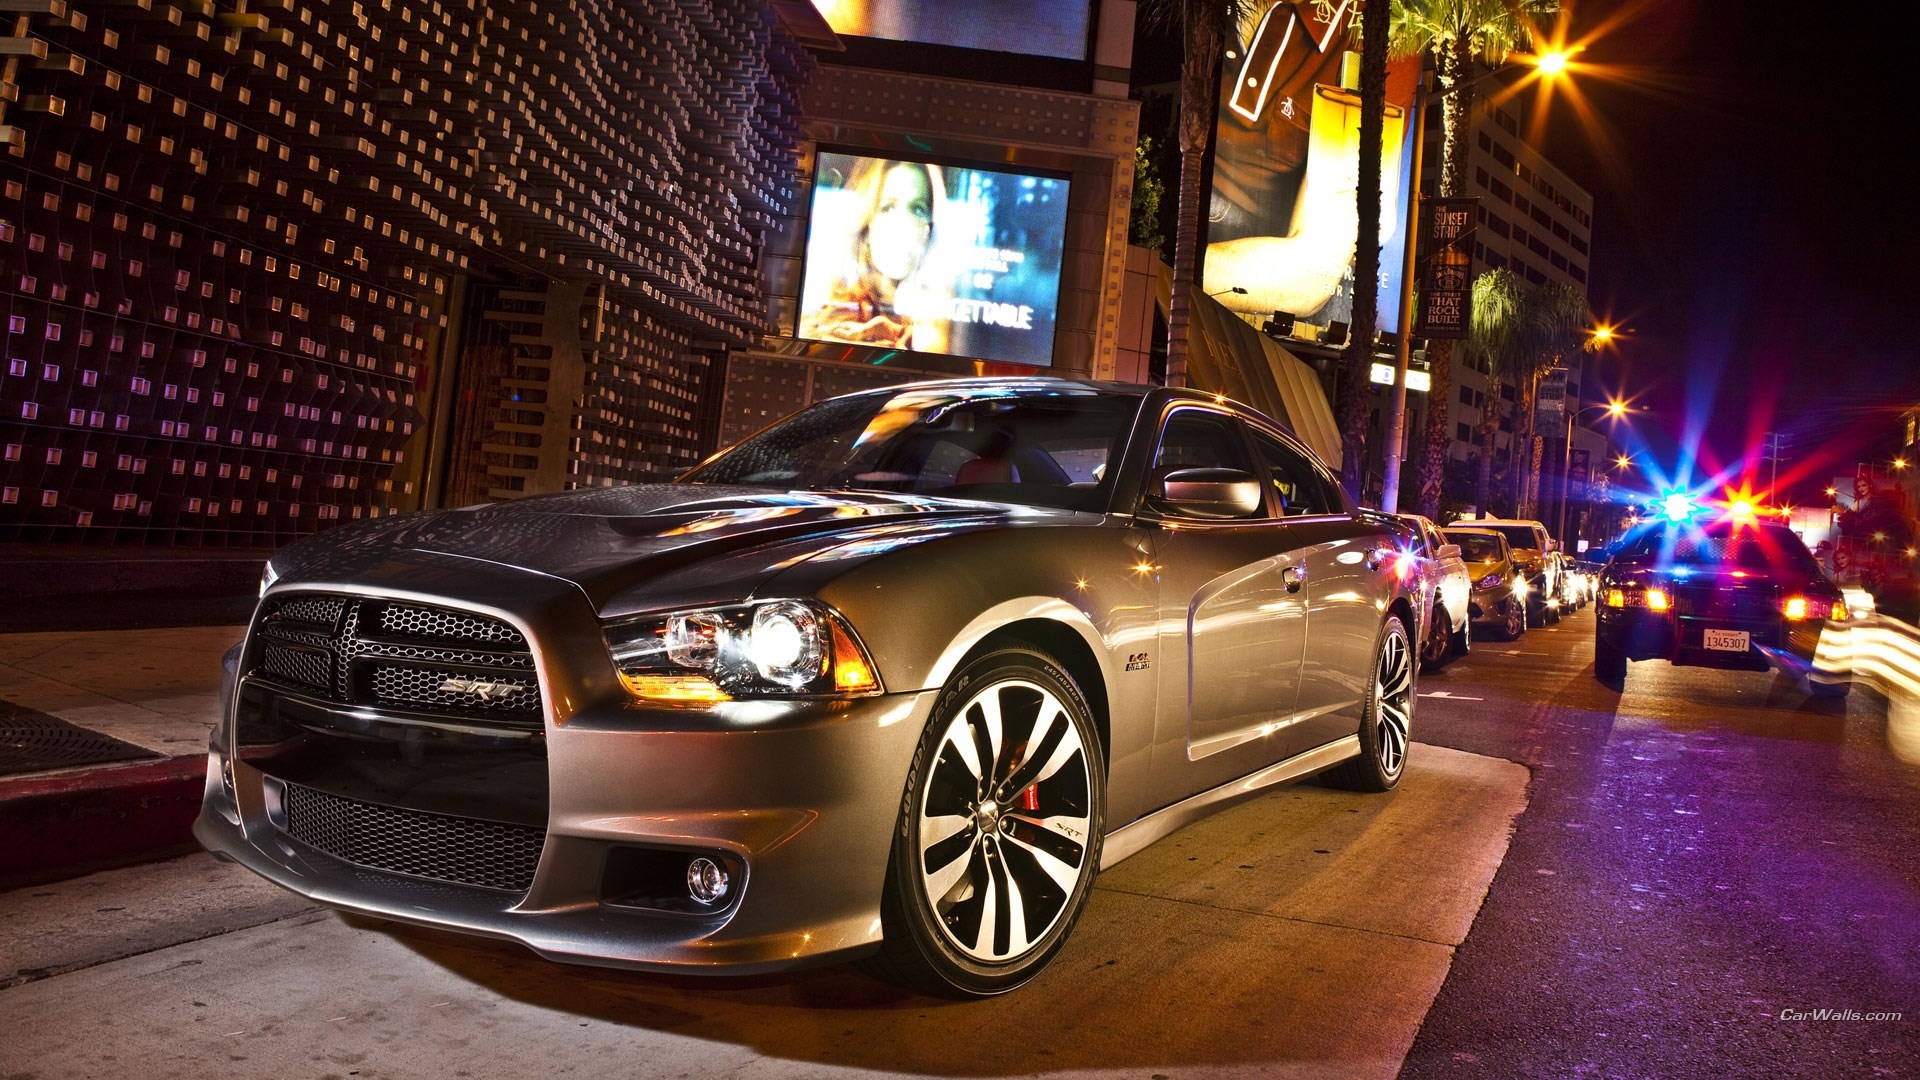 1920x1080-hd-dodge-charger-srt-wallpaper-wpc900815